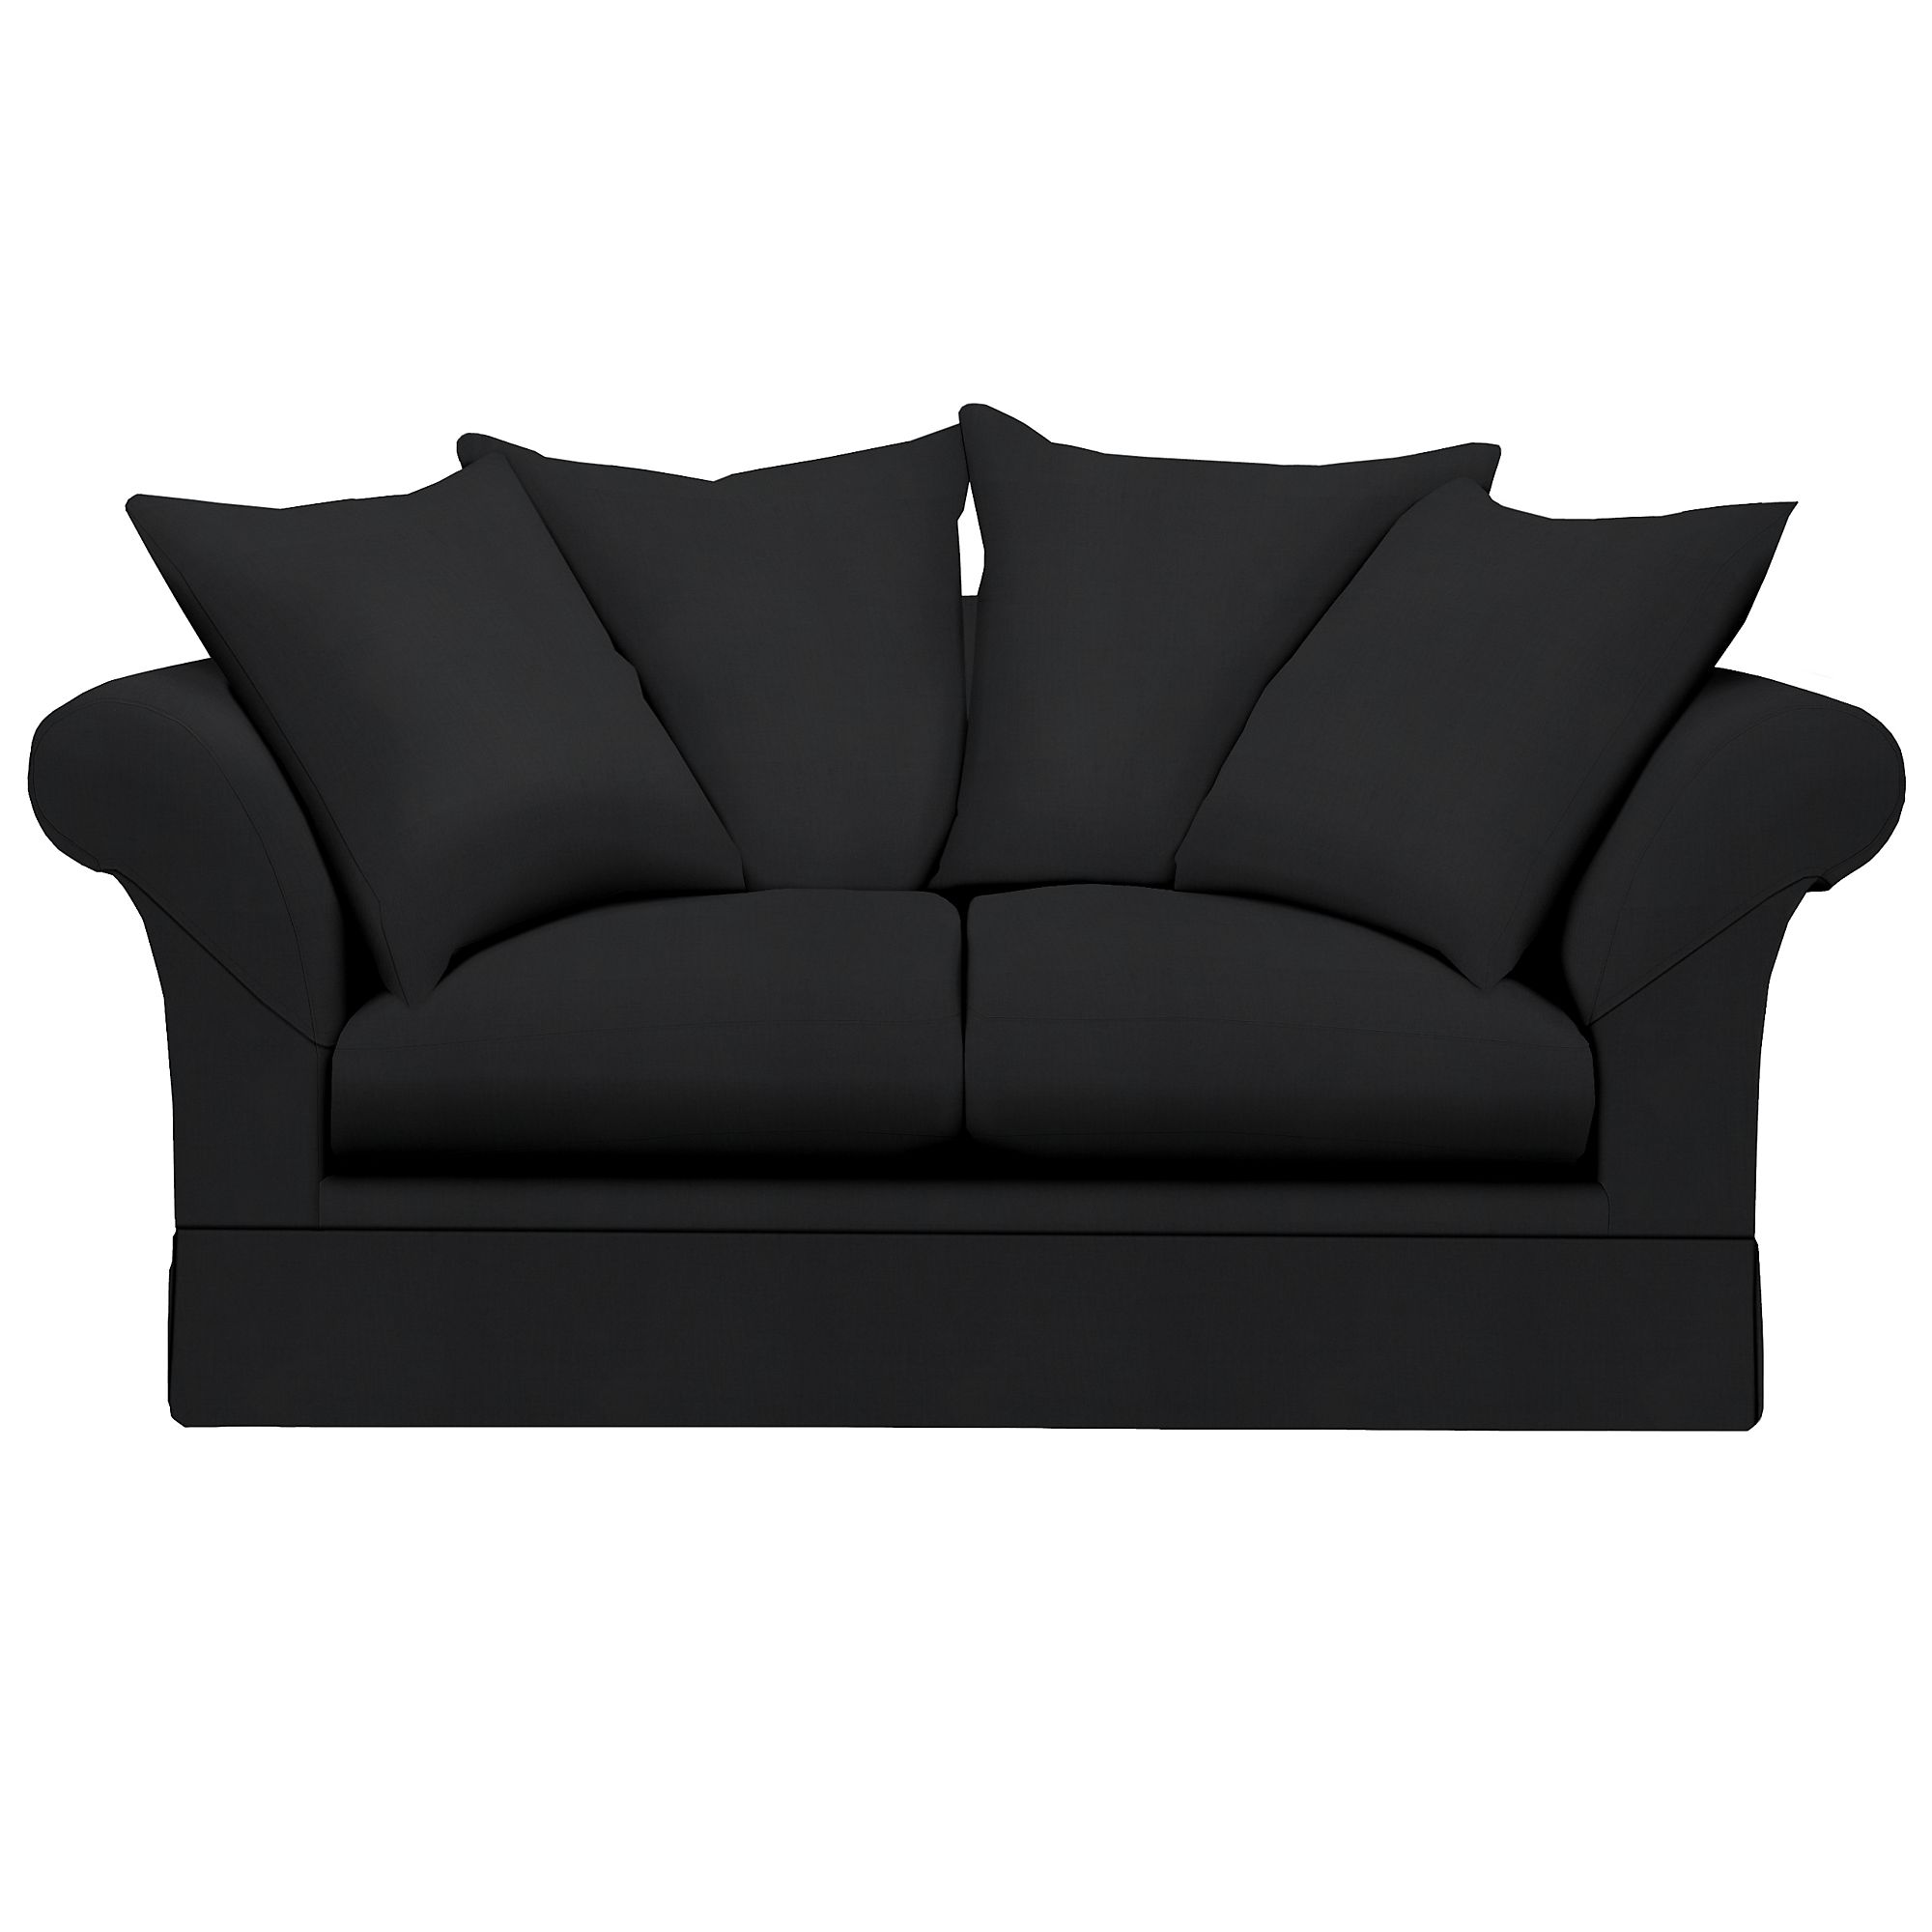 john lewis armchair covers rent a wheel chair buy cheap sofa compare sofas prices for best